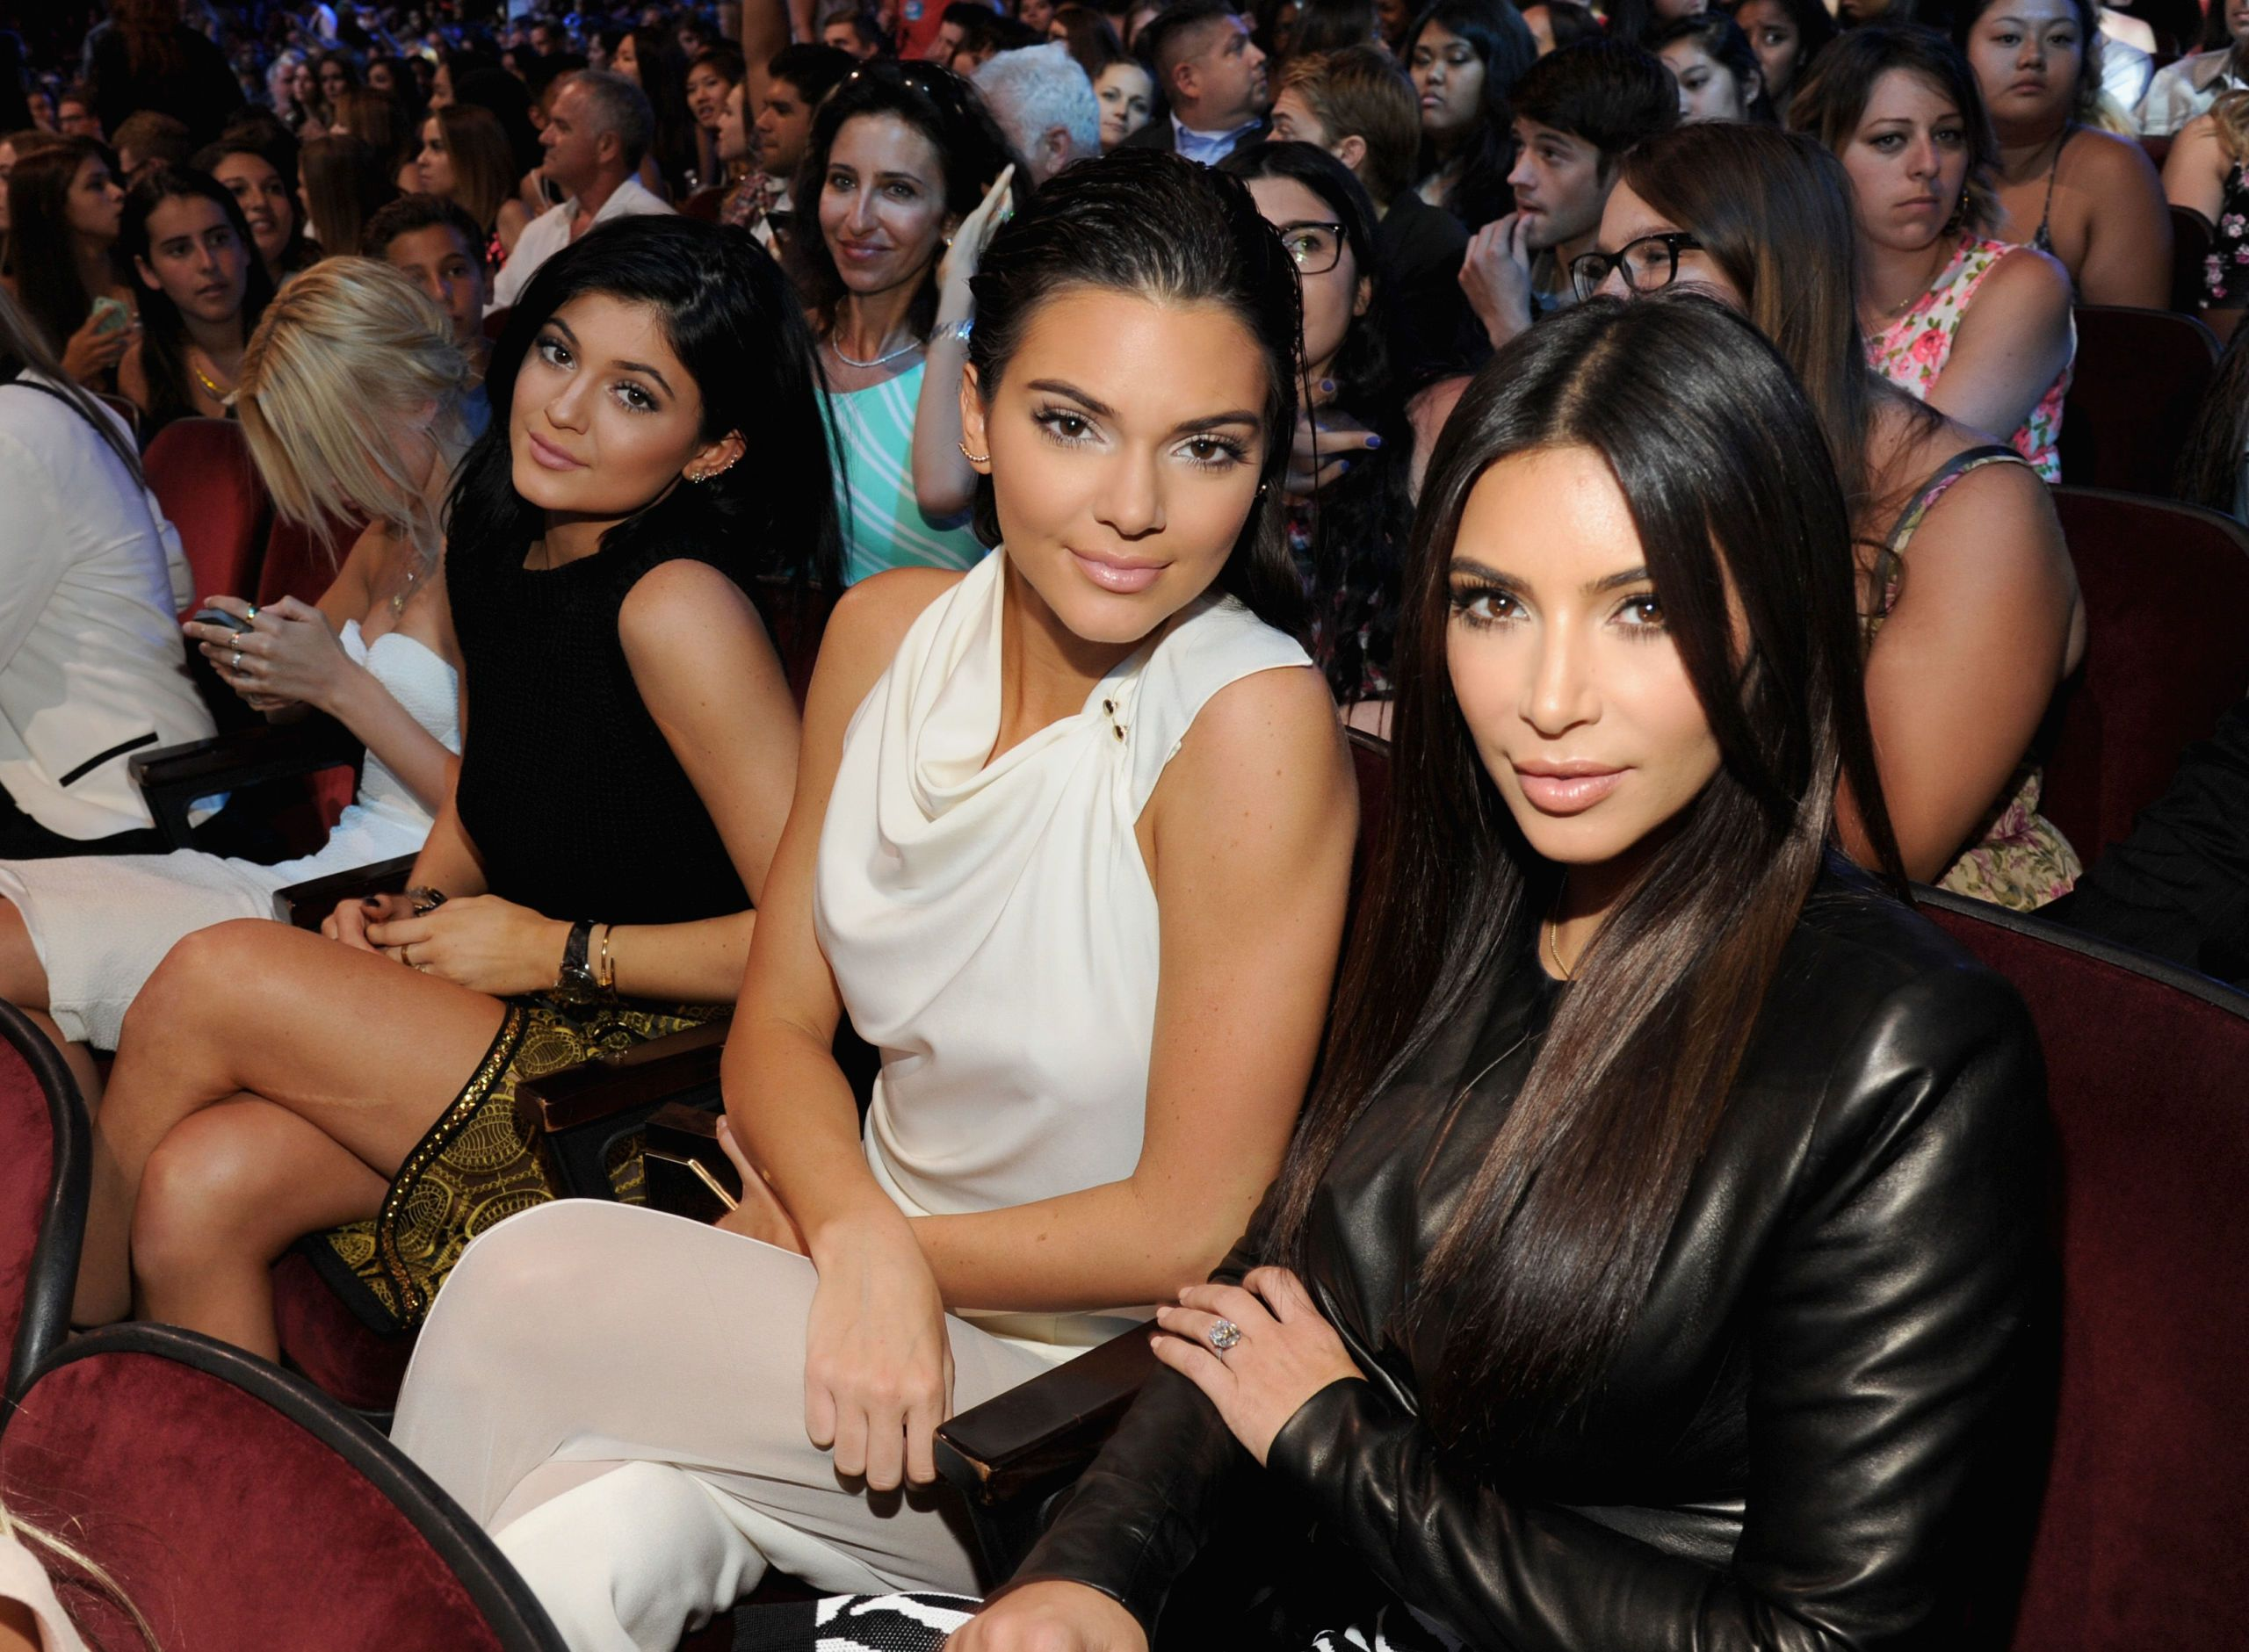 This Kendall Jenner Pic Just Broke Kim's Record for Most-Liked Photo on Instagram